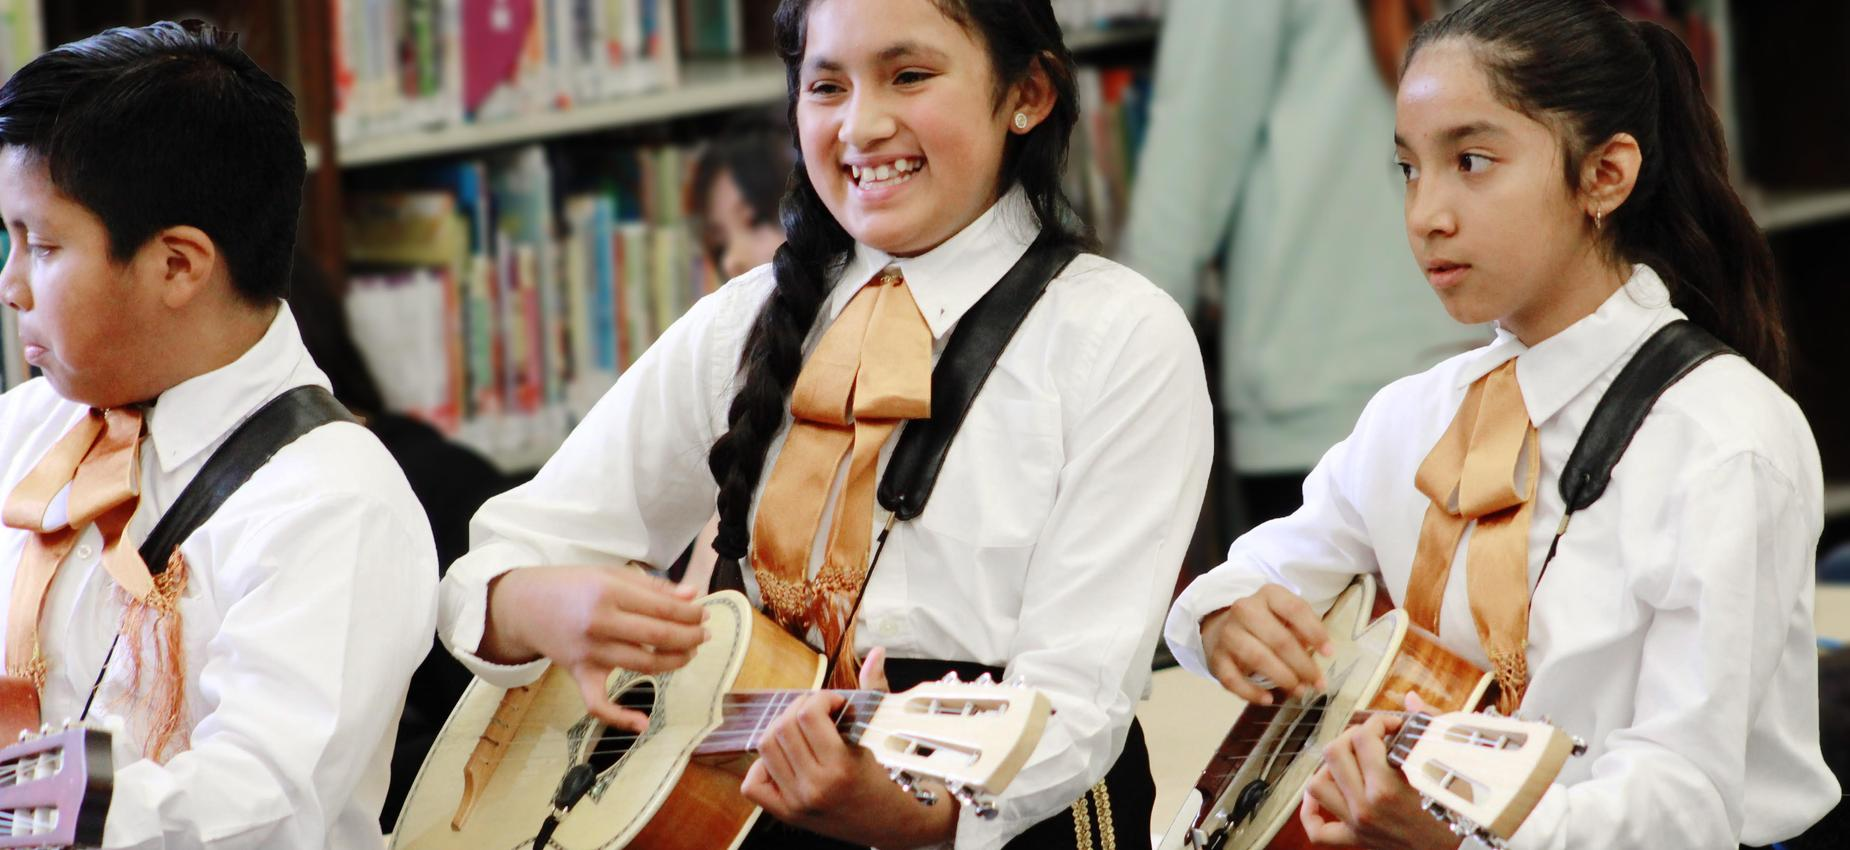 Roosevelt students playing instruments